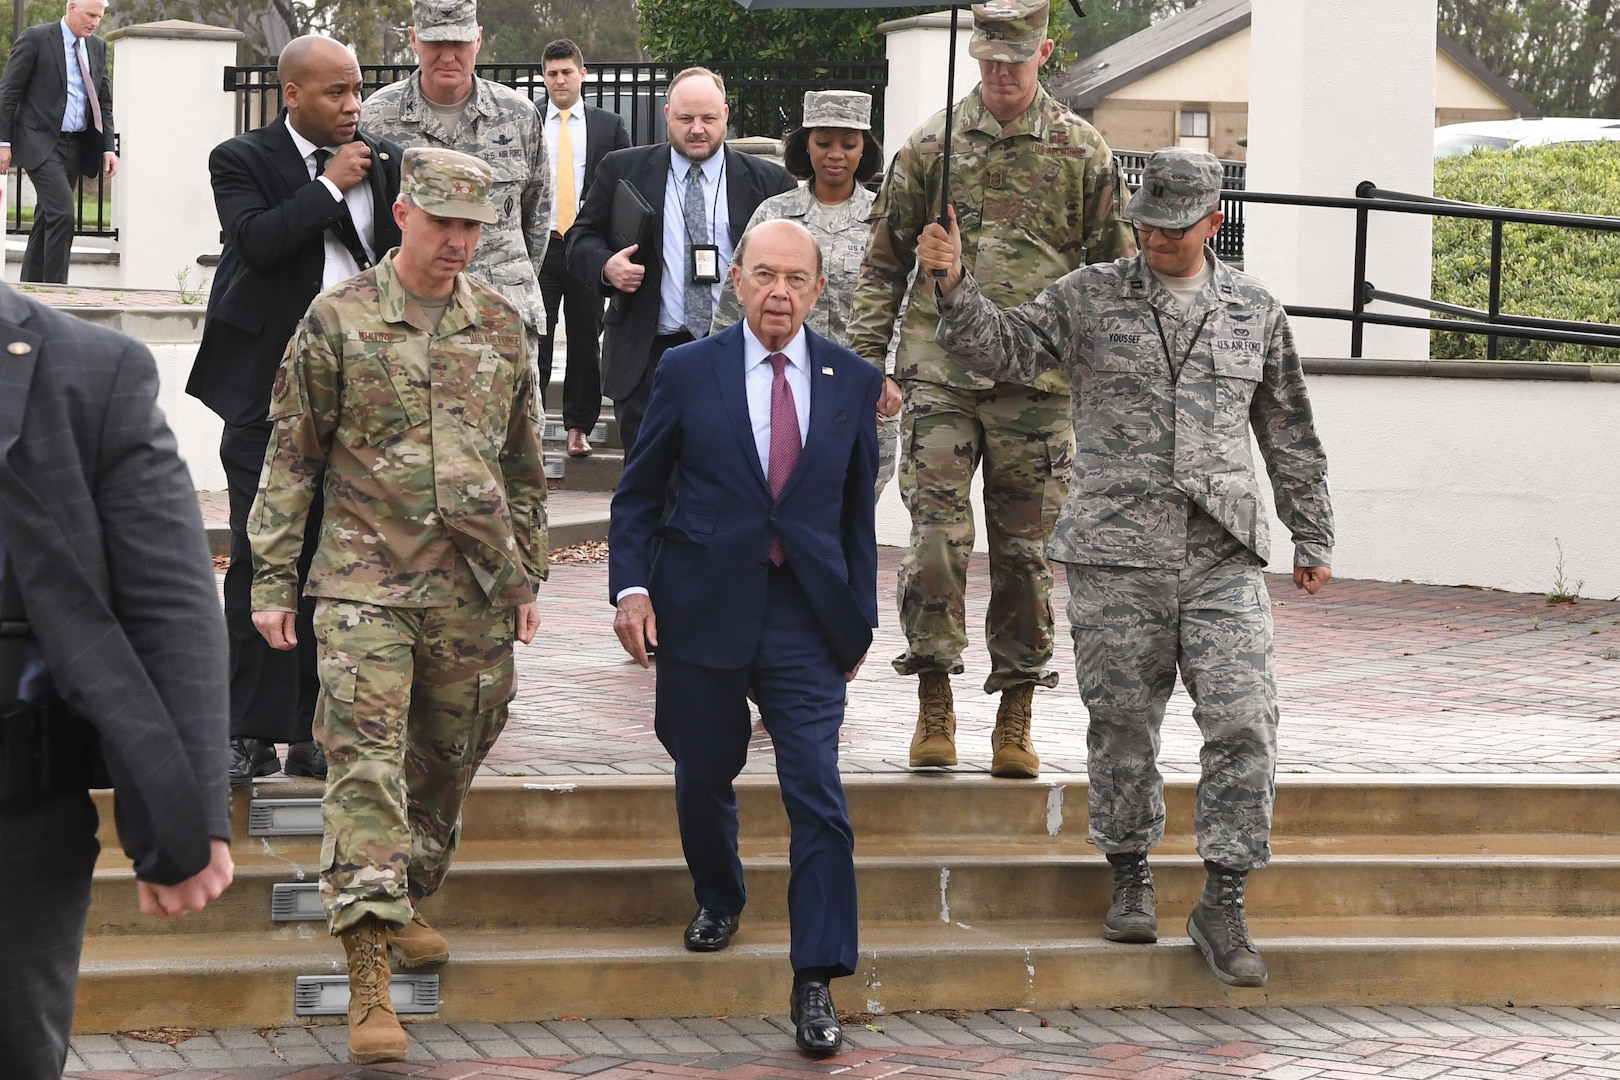 Deputy Joint Force Space Component Commander Maj. Gen. Stephen Whiting (left) walks with U.S. Secretary of Commerce Wilbur Ross (center) during a visit at Vandenberg AFB, Calif., Nov. 29, 2018. Secretary Ross met with service members from the 18th Space Control Squadron, Combined Space Operations Center, Joint Force Space Component Command and U.S. Strategic Command to discuss Space Situational Awareness capabilities and space operations during a visit here Nov. 29-30. Secretary Ross also spoke with service members about the Department of Defense transitioning non-military aspects of Space Situational Awareness and space safety monitoring and responsibilities to the Department of Commerce. (U.S. Air Force photo by Maj. Cody Chiles)